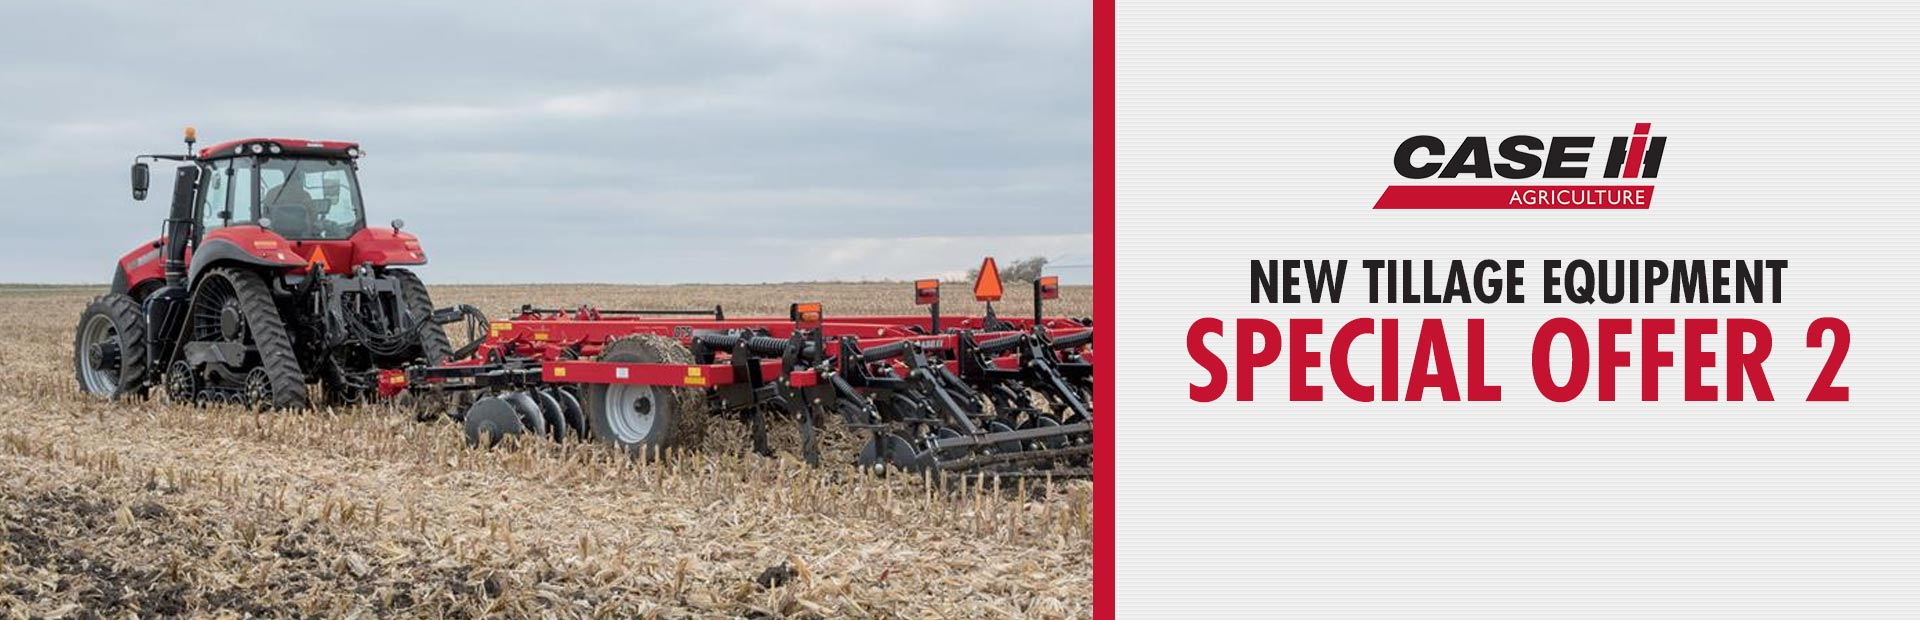 Case IH: New Tillage Equipment Special Offer 2